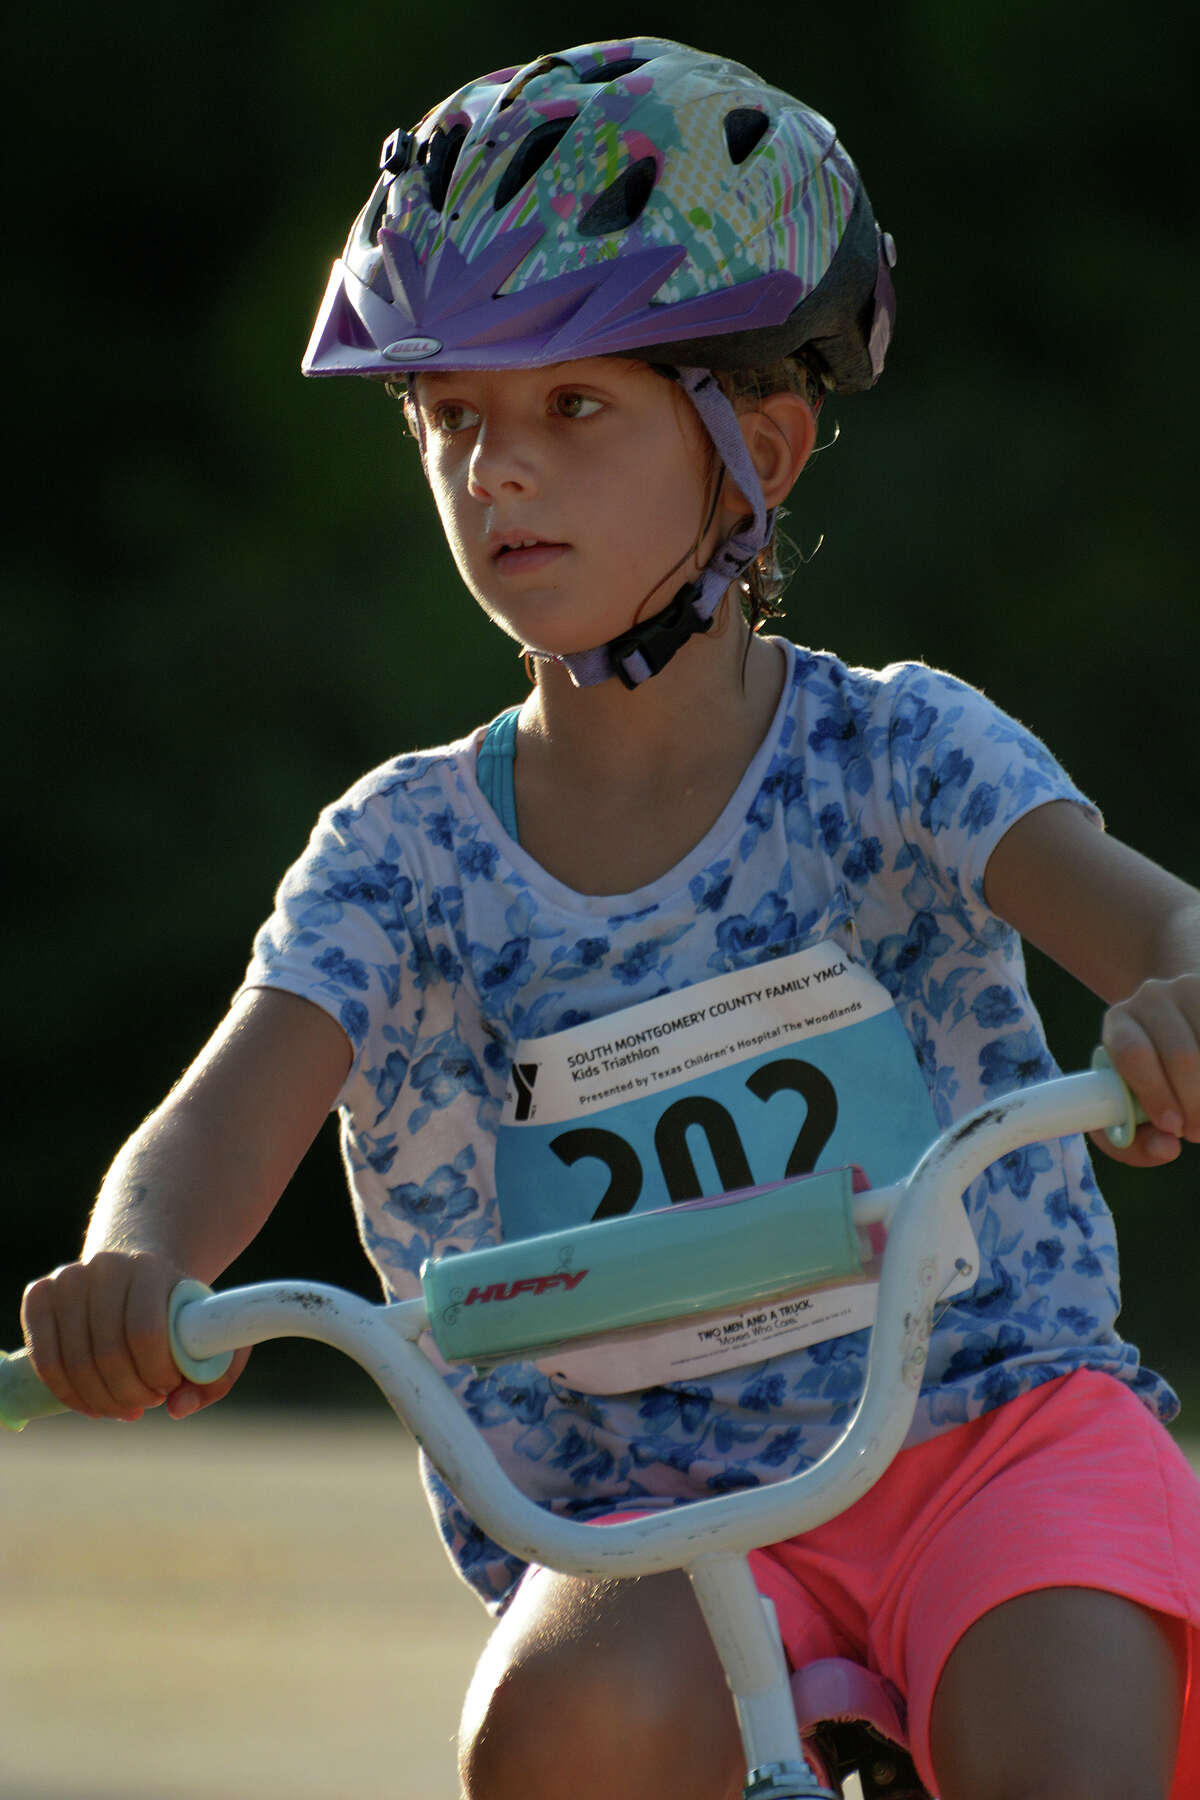 Casey Small, 6, a first grader at Bernshausen Elementary in Tomball, Woodlands, finishes the biking portion of the 2016 The Woodlands Kids Triathlon at The Woodlands Family YMCA at Branch Crossing on Saturday, July 23, 2016.